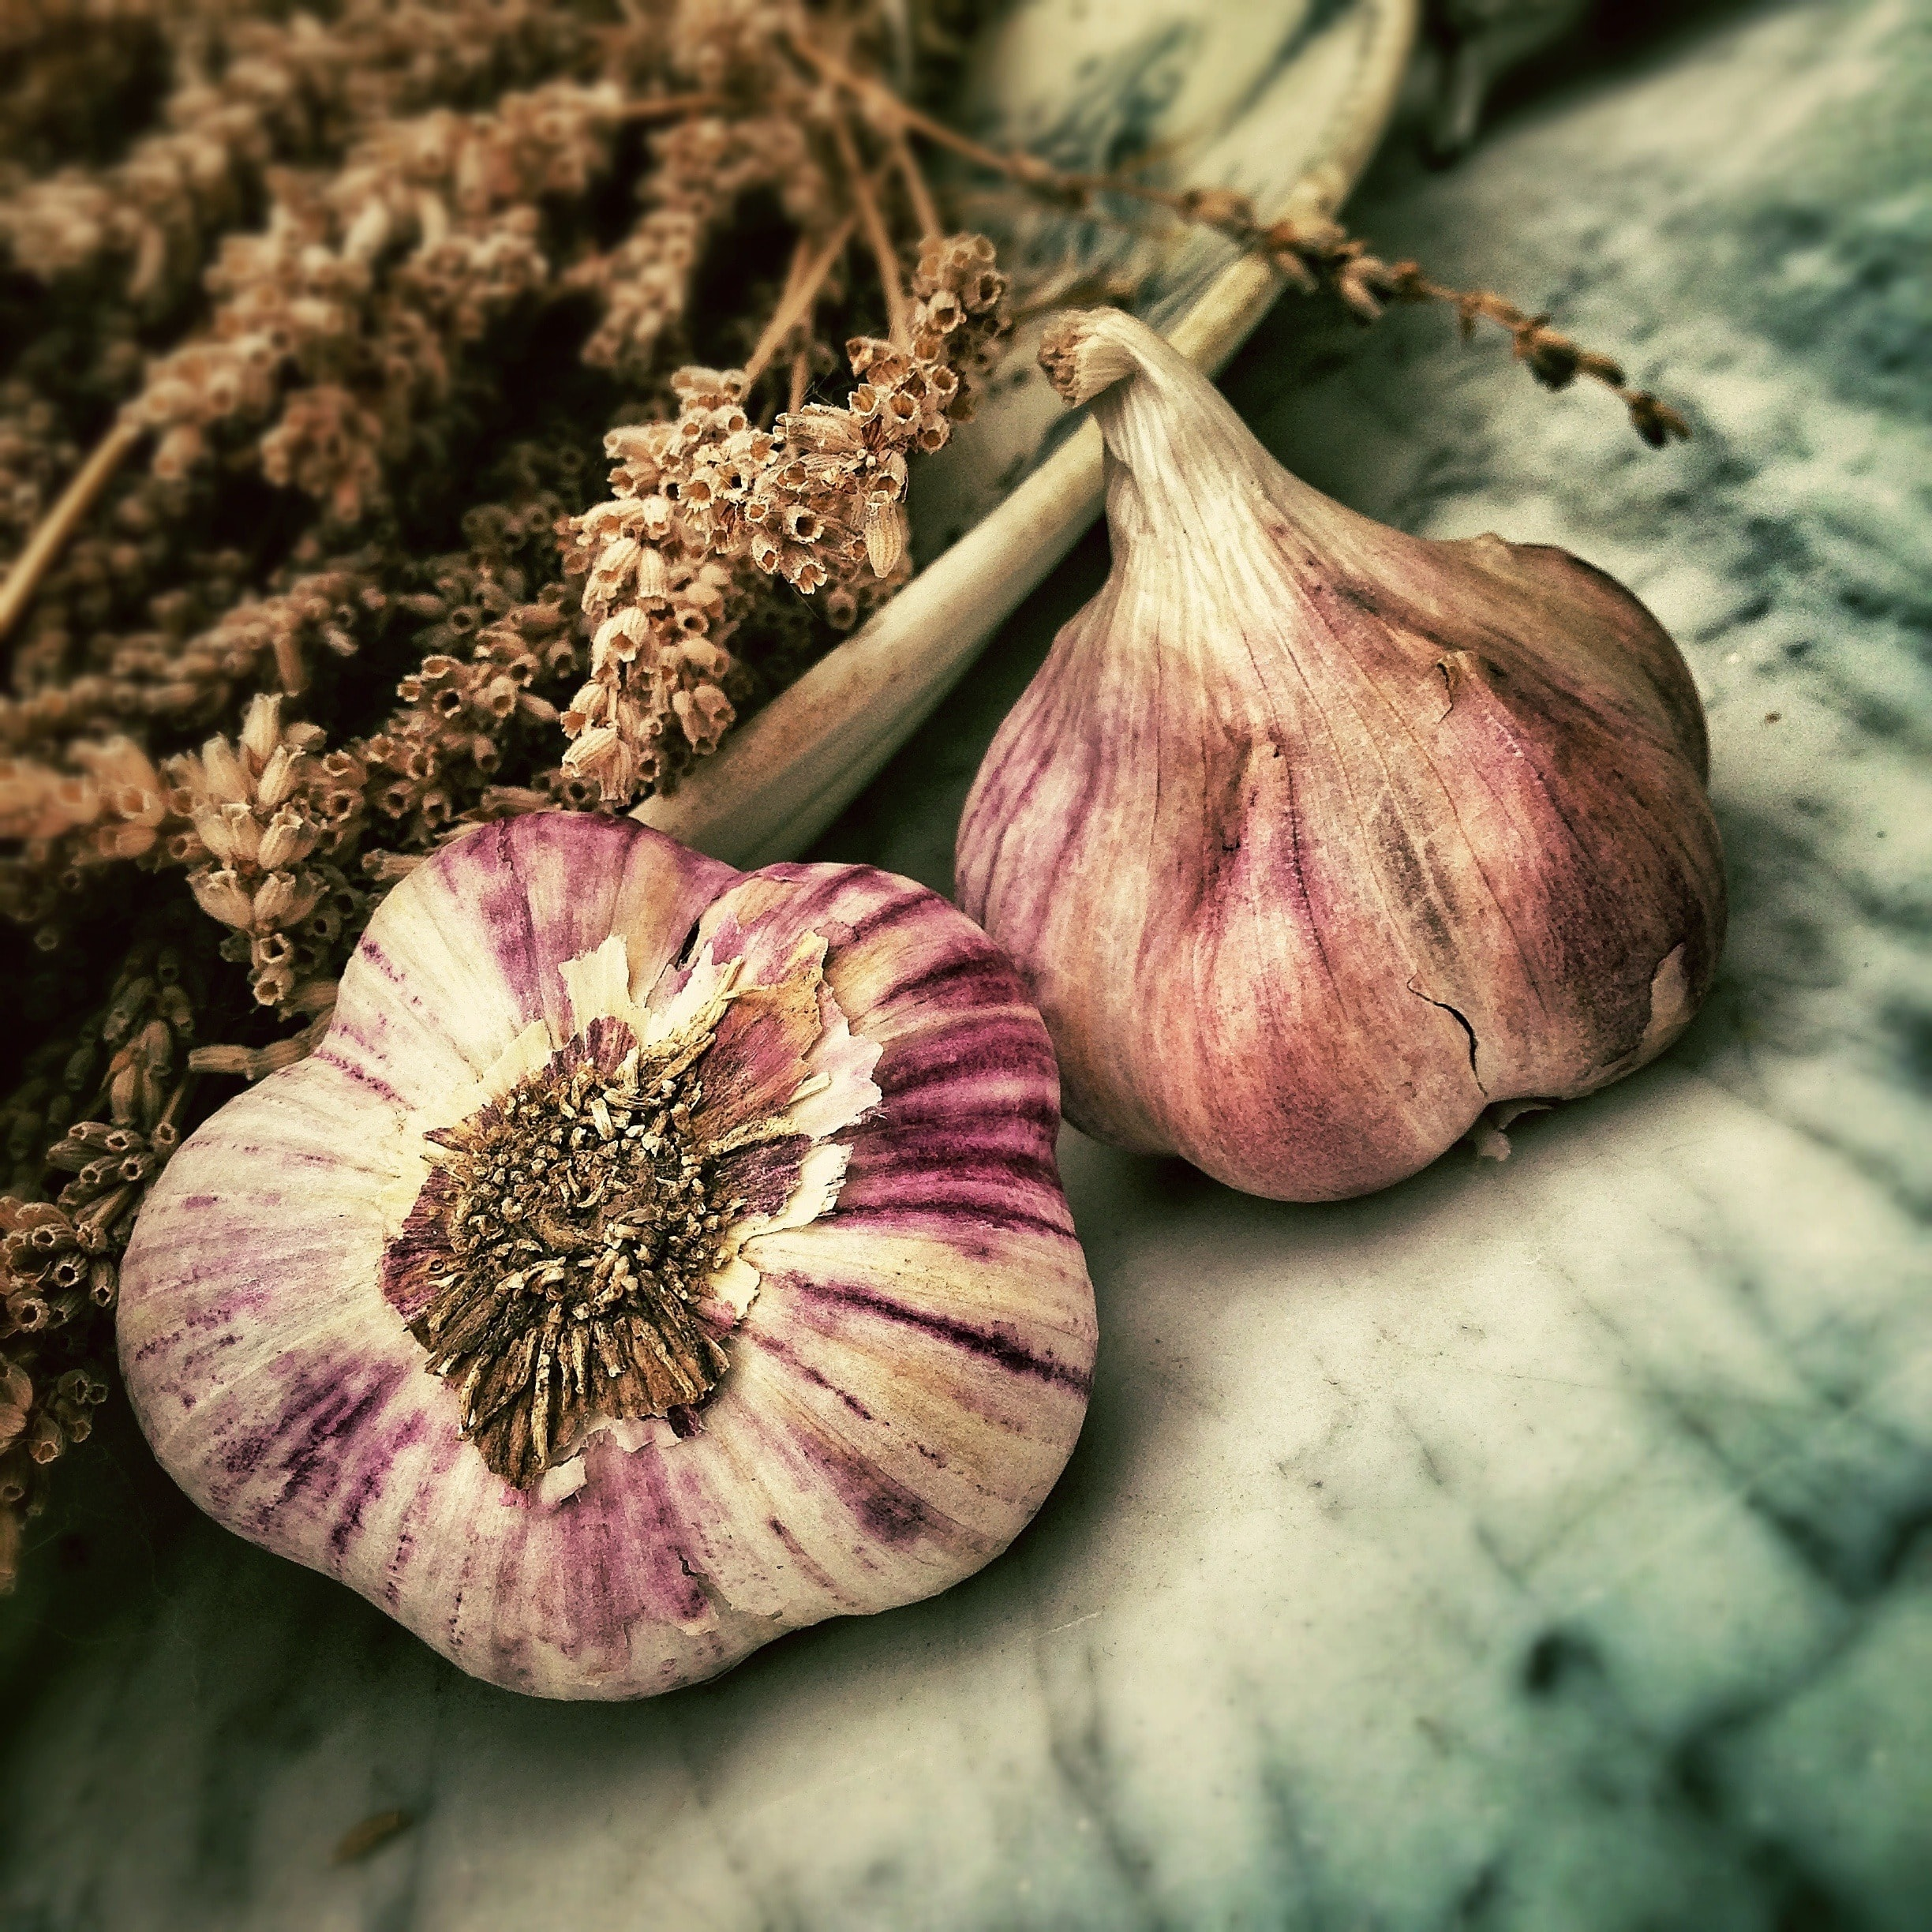 Bulbs of garlic and dried herbs on a table